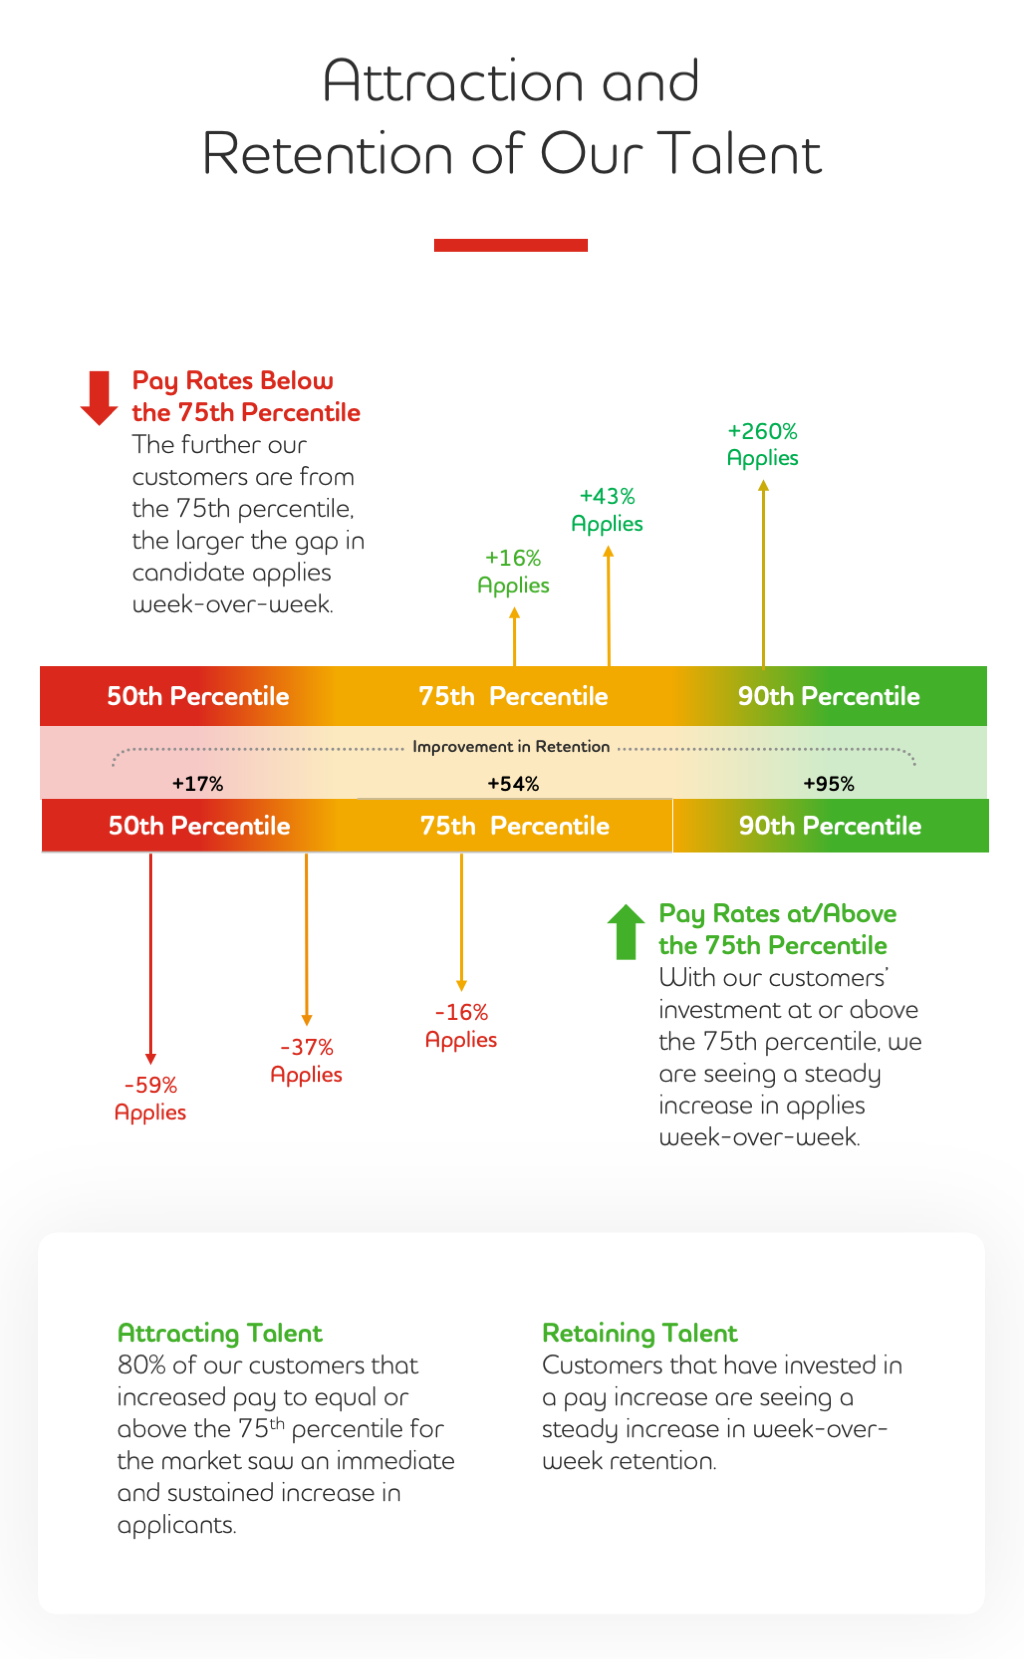 Attraction and Retention Infographic